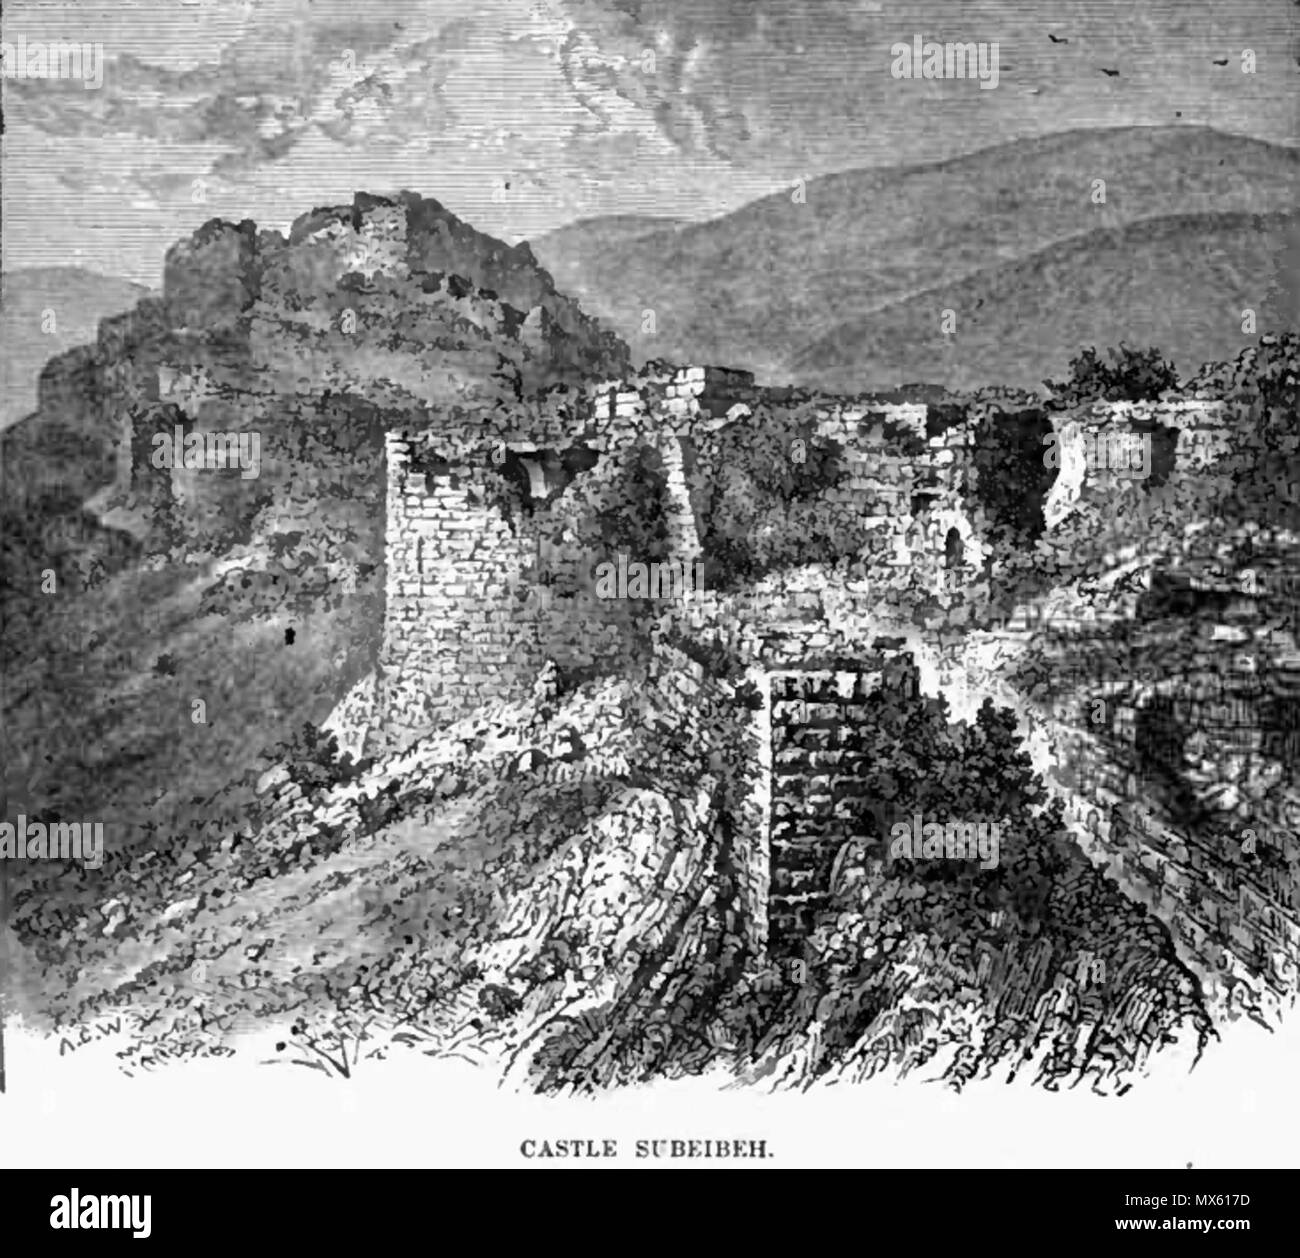 . English: Nimrod Fortress. al-Subayba. Qala'at Namrud . 1887. Frank S De Hass, 118 Castle subeibeh 1887 - Stock Image